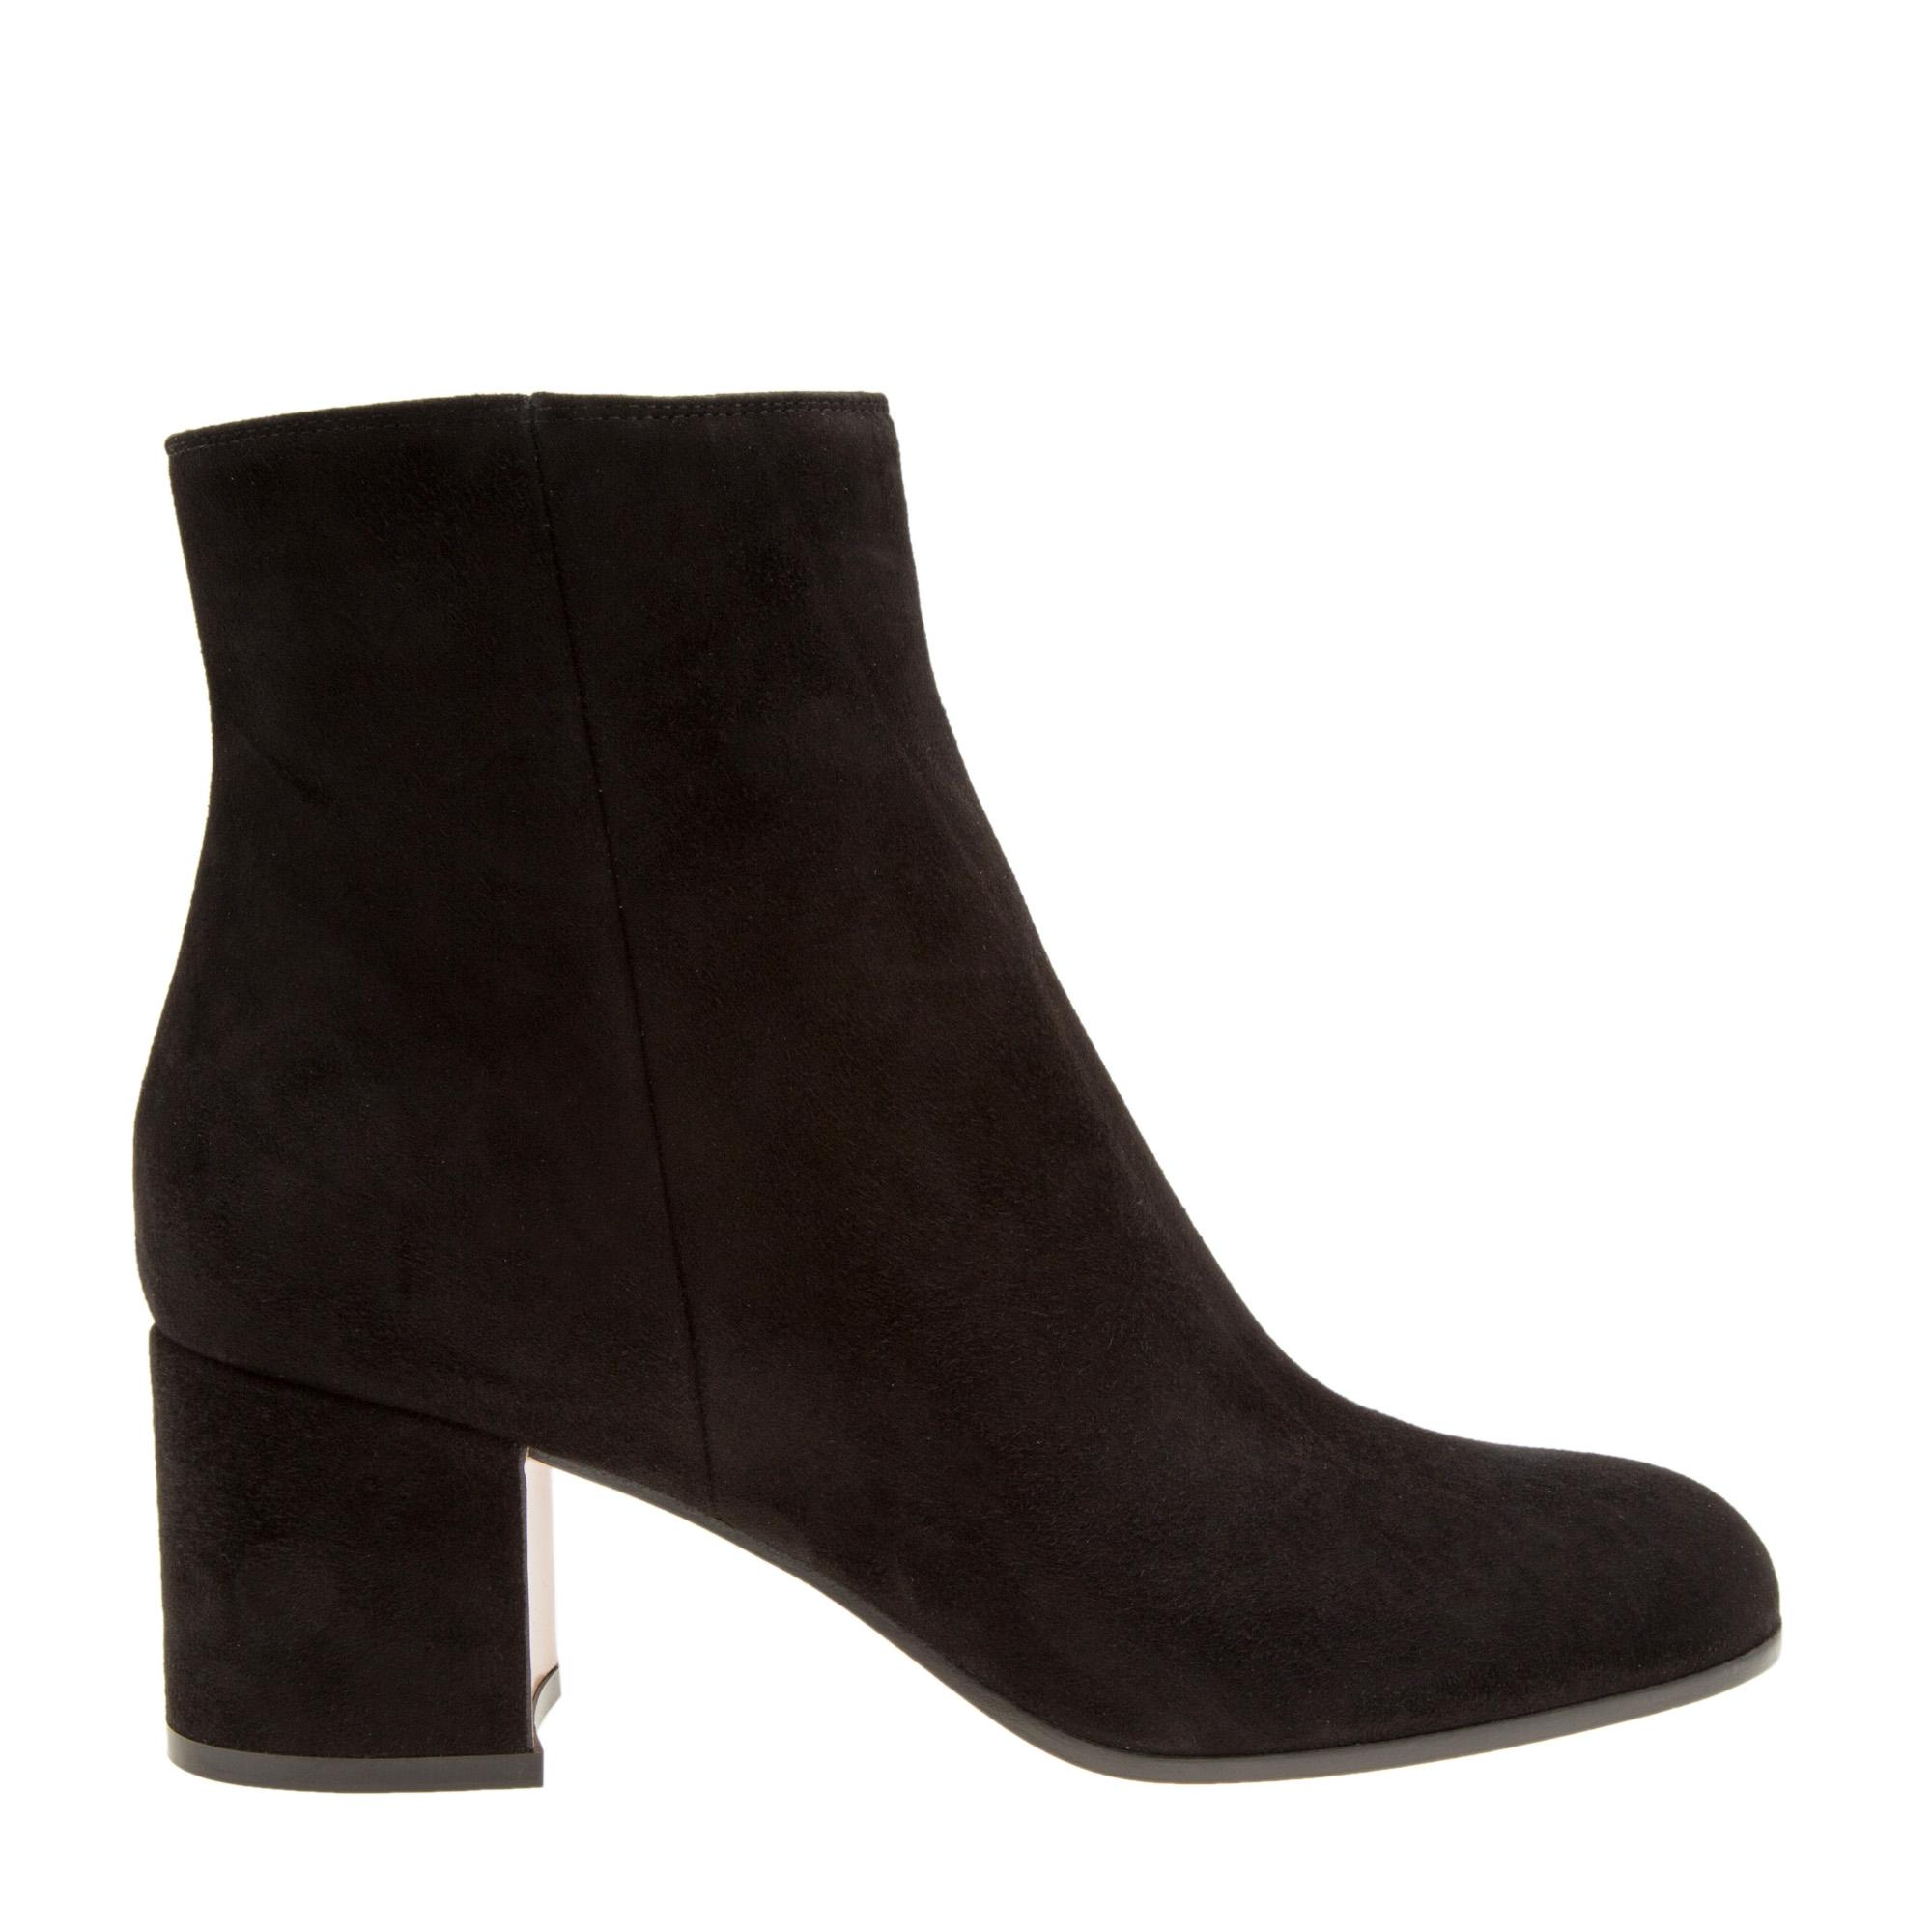 Margaux suede boots